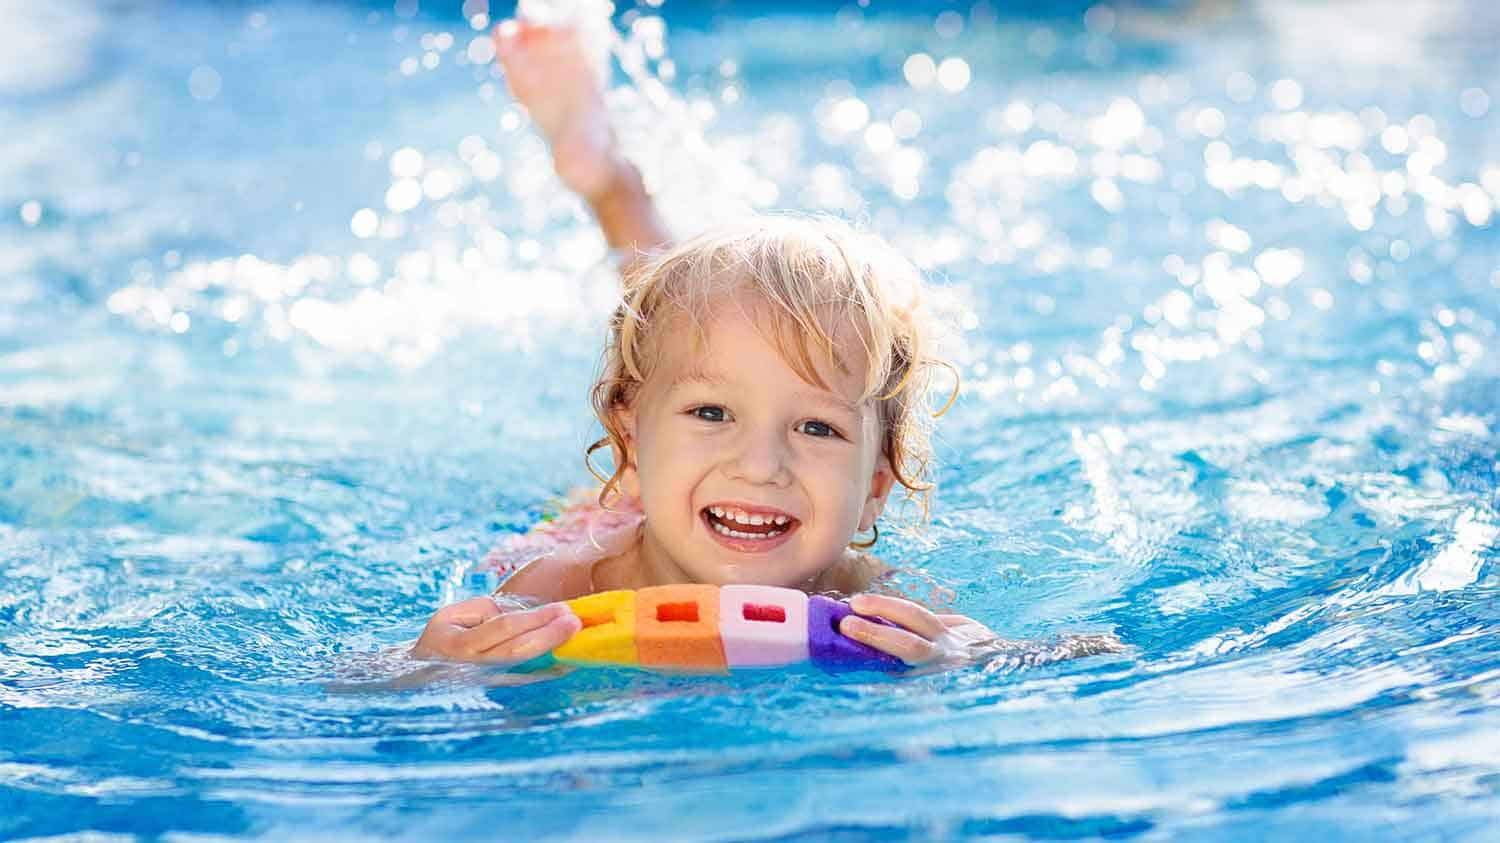 Happy young child swimming